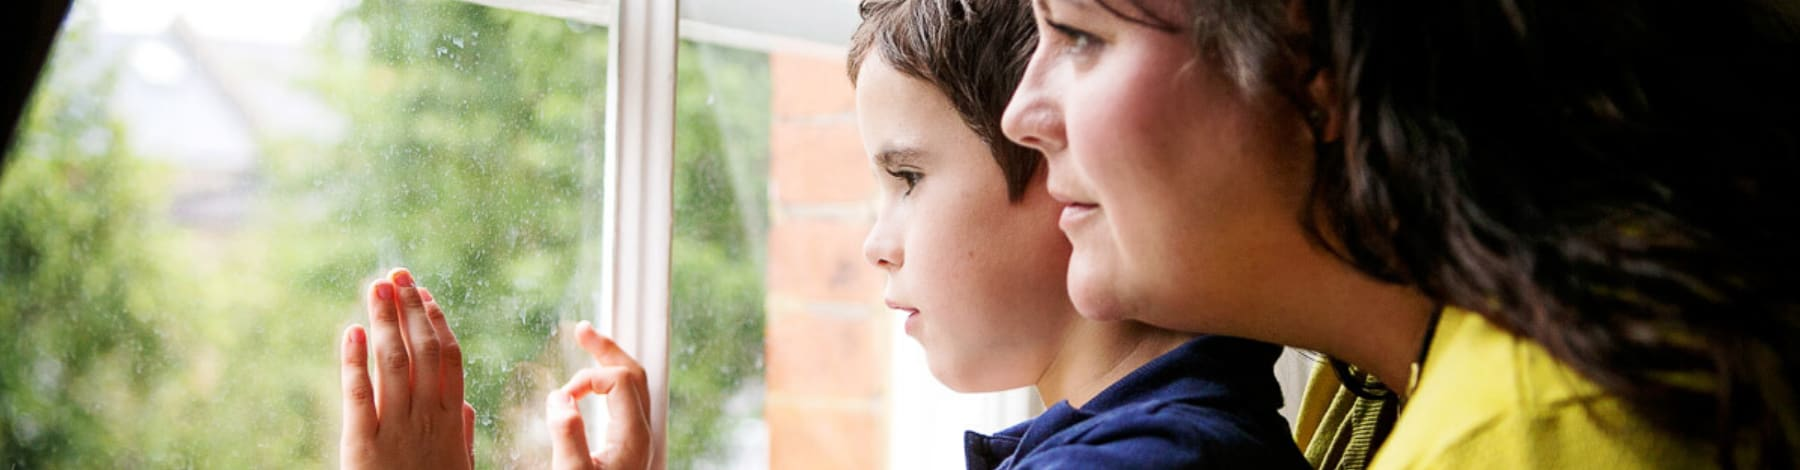 Hestia awarded £20,000 to support children experiencing domestic abuse in Ealing and Harrow